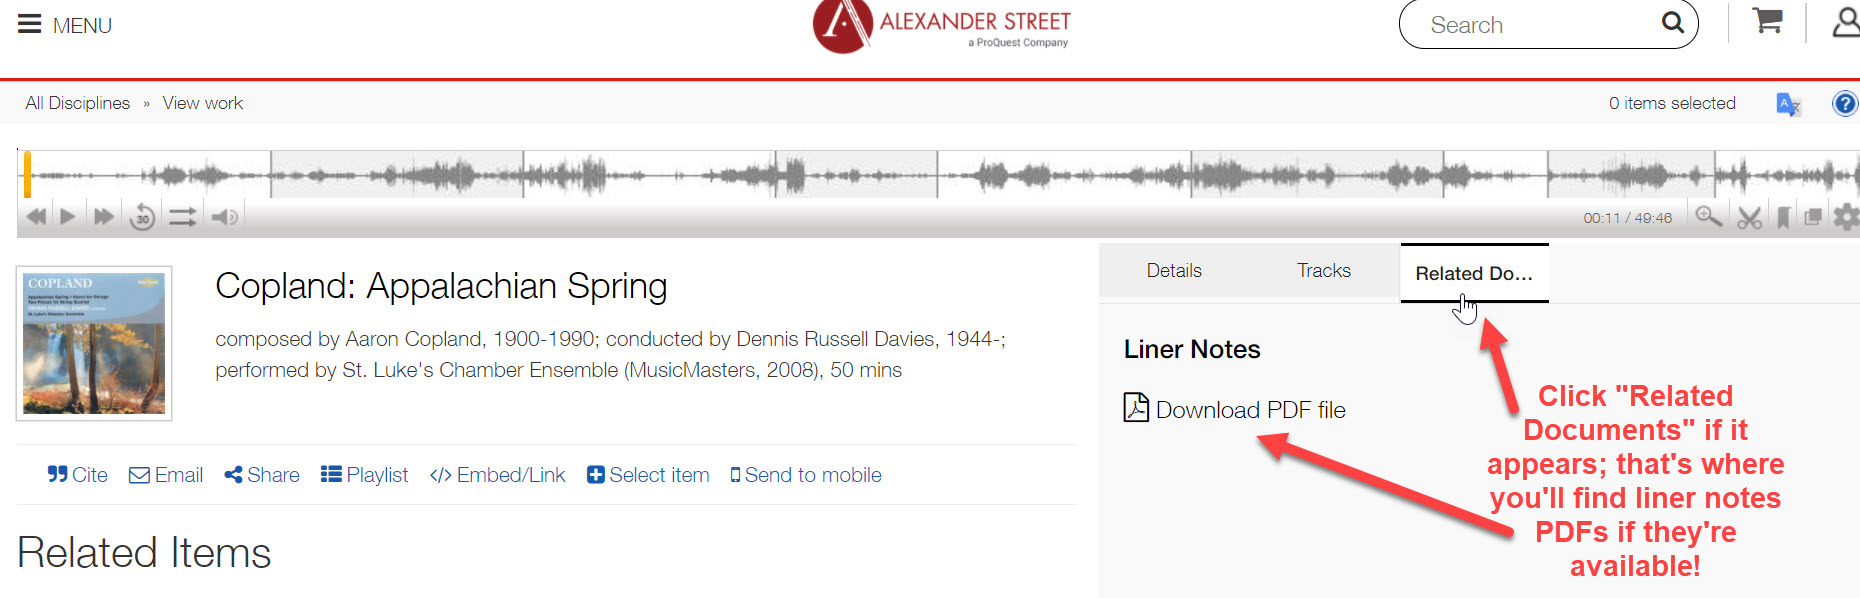 """An image of the Classical Music Library interface with arrows pointing toward the """"Related Documents"""" tab and the link for PDF versions of liner notes."""